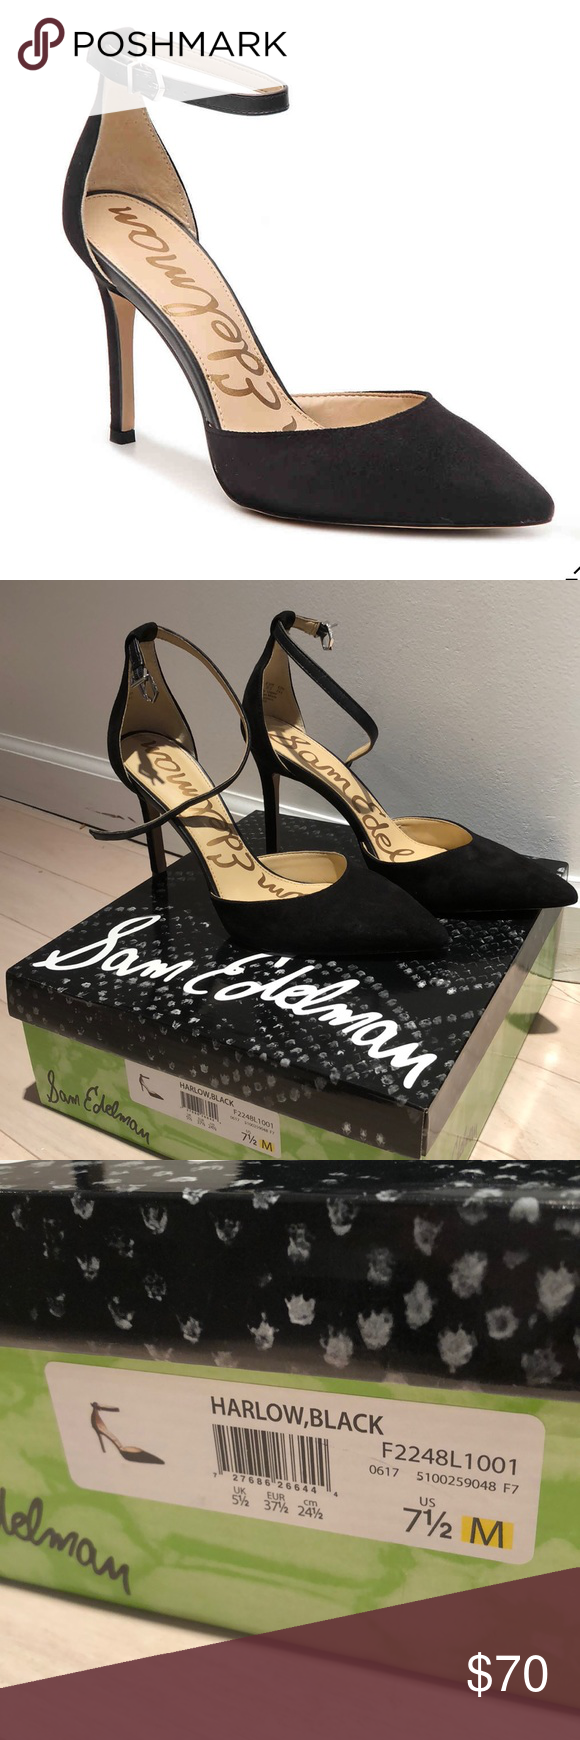 7e0c448d39b Sam Edelman Harlow Pump Adorable pair of heels with a buckle. Great  condition ... worn once for an hour. In original box. Sam Edelman Shoes  Heels